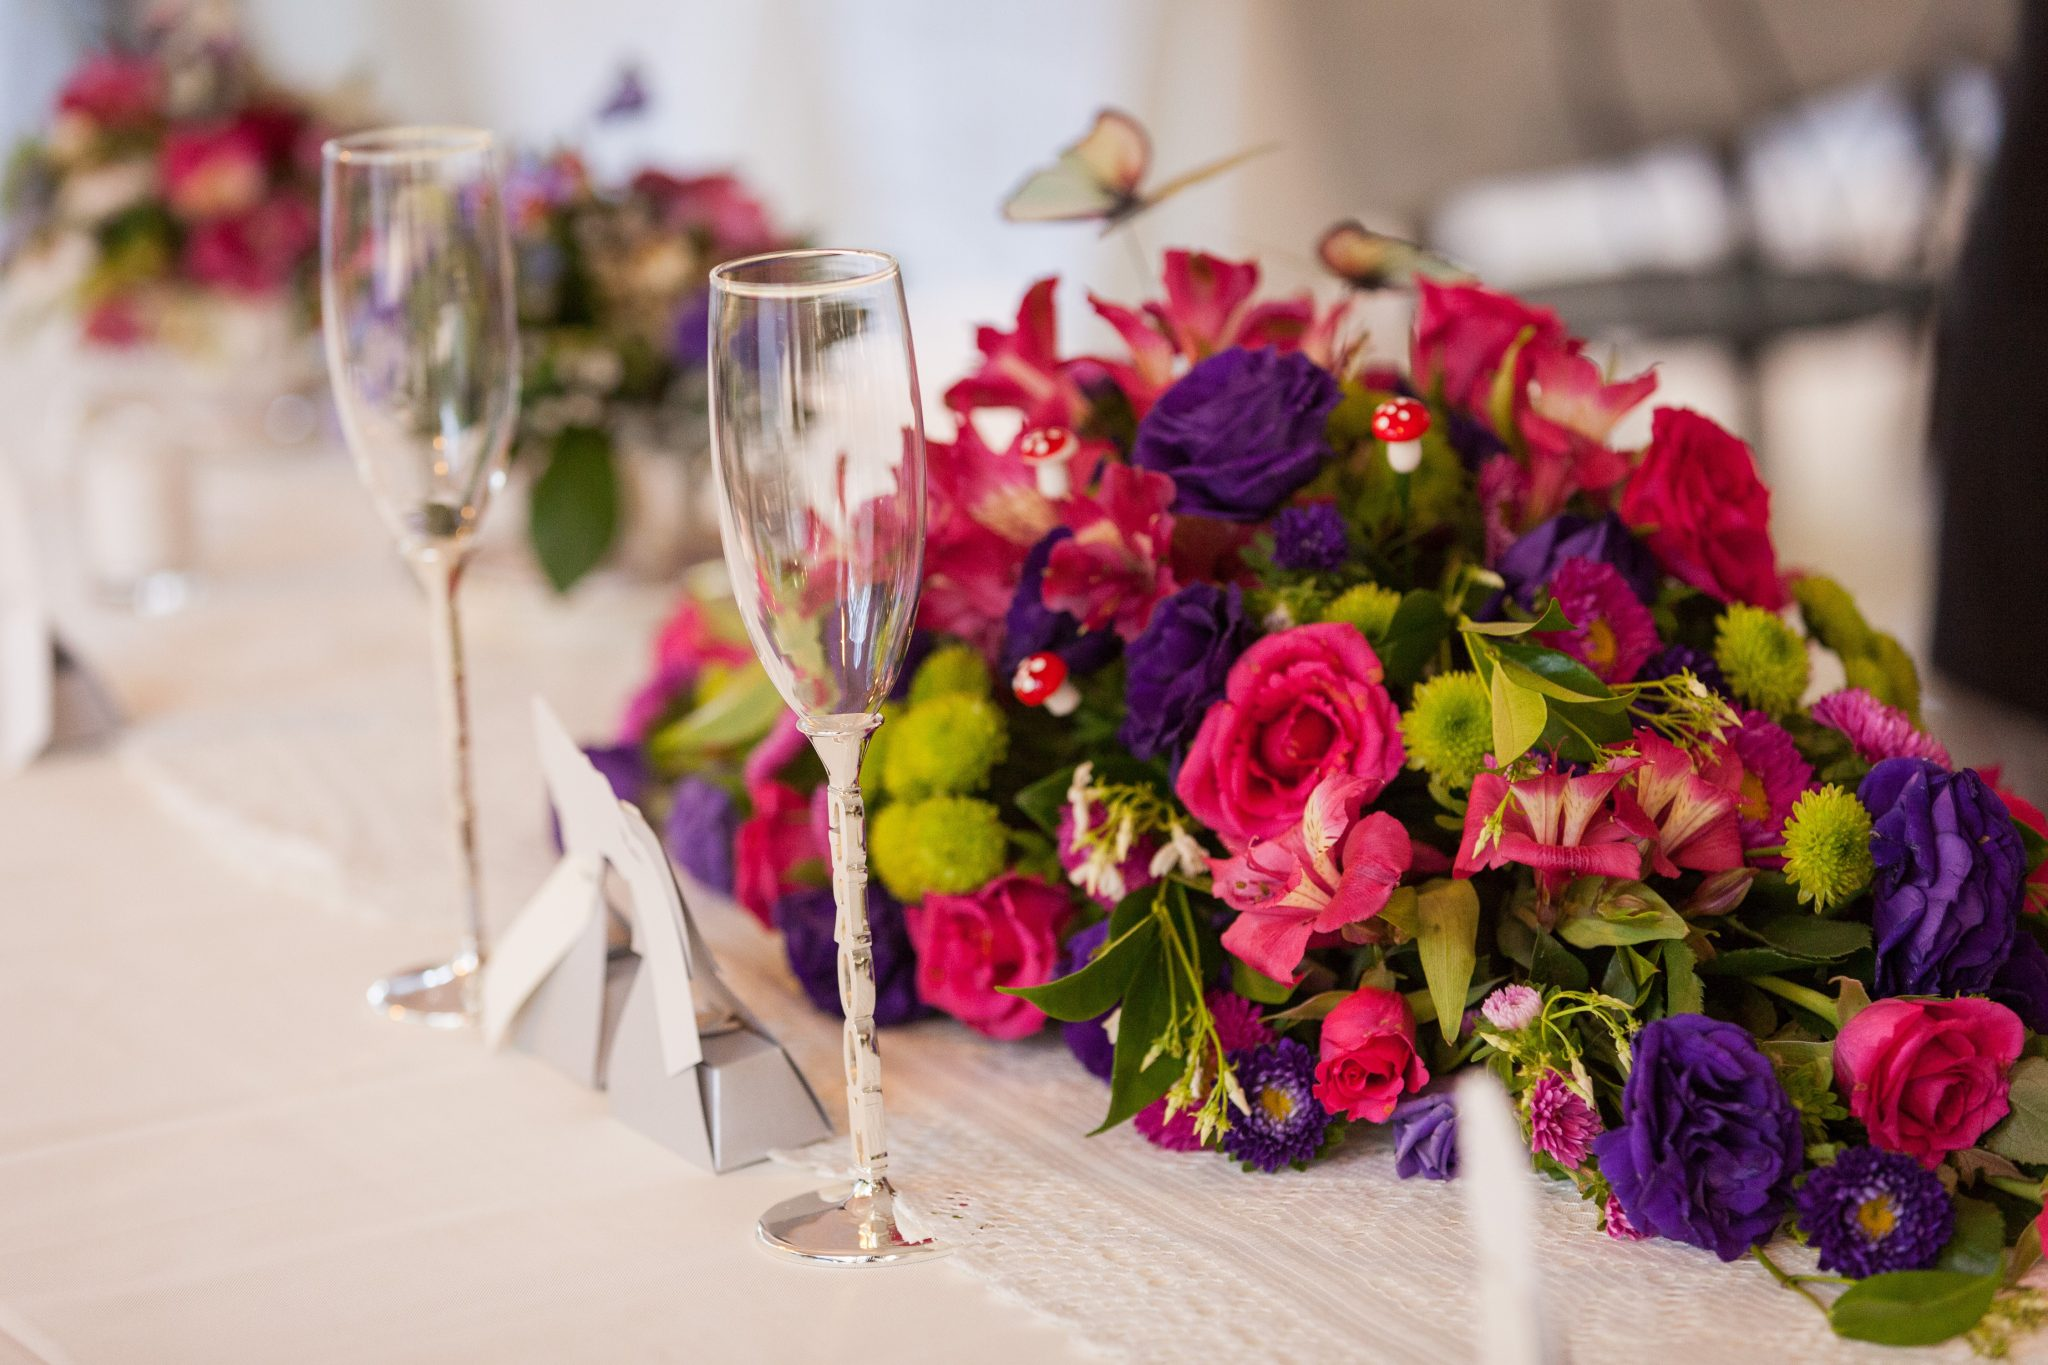 Natalie-Cristian-table-arrangements.jpg